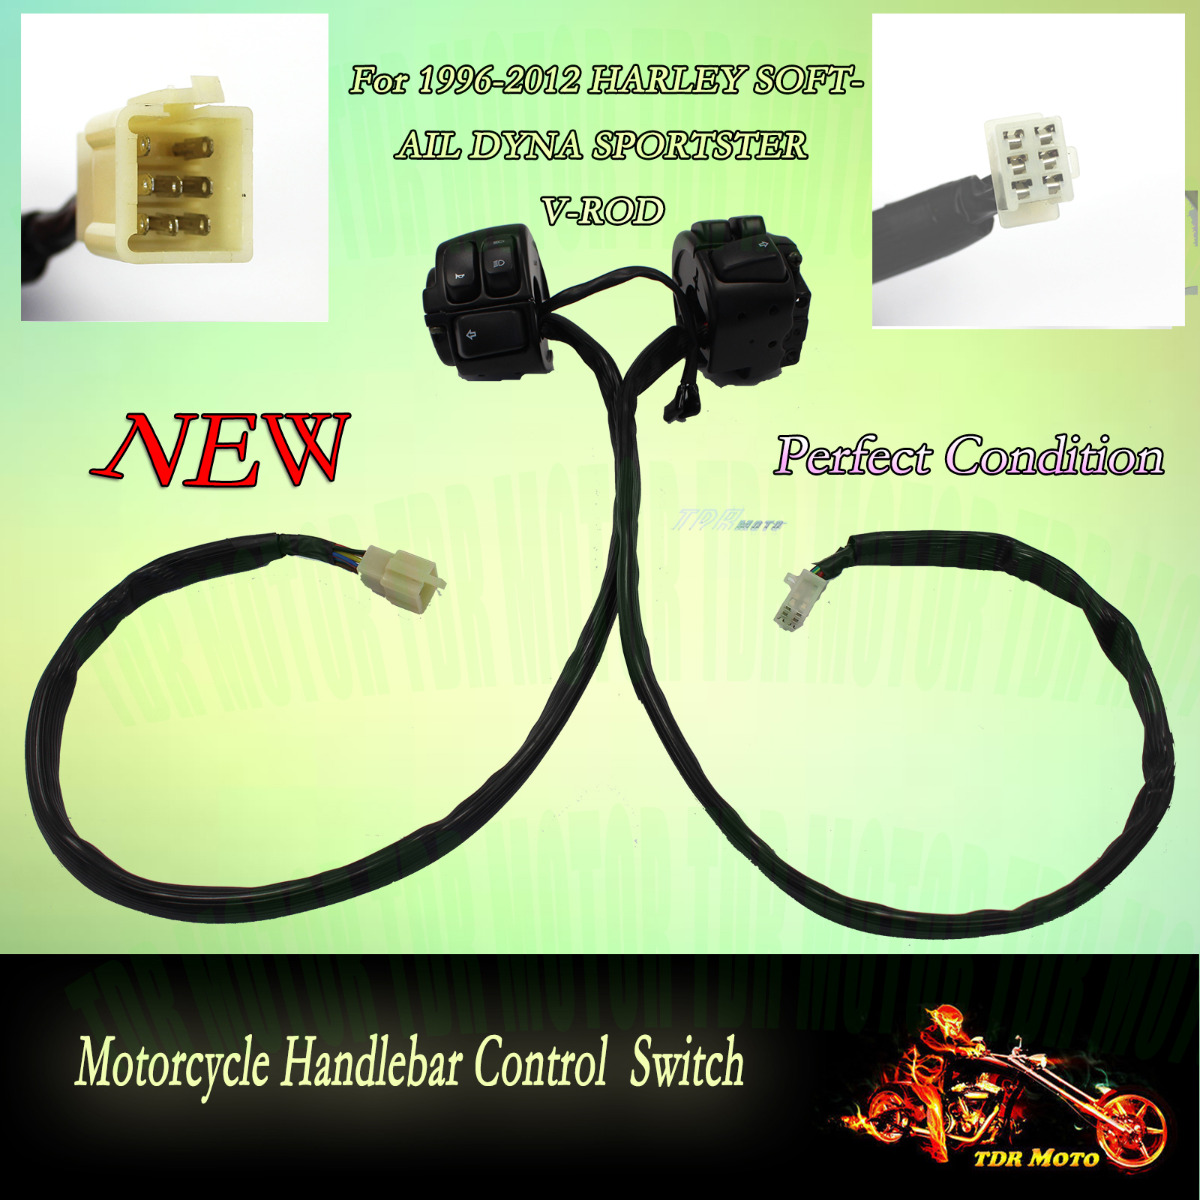 TM110 TDRb_0001 handlebar wire harness for harley signal light switchs 2002 2003 harley handlebar wiring harness at fashall.co